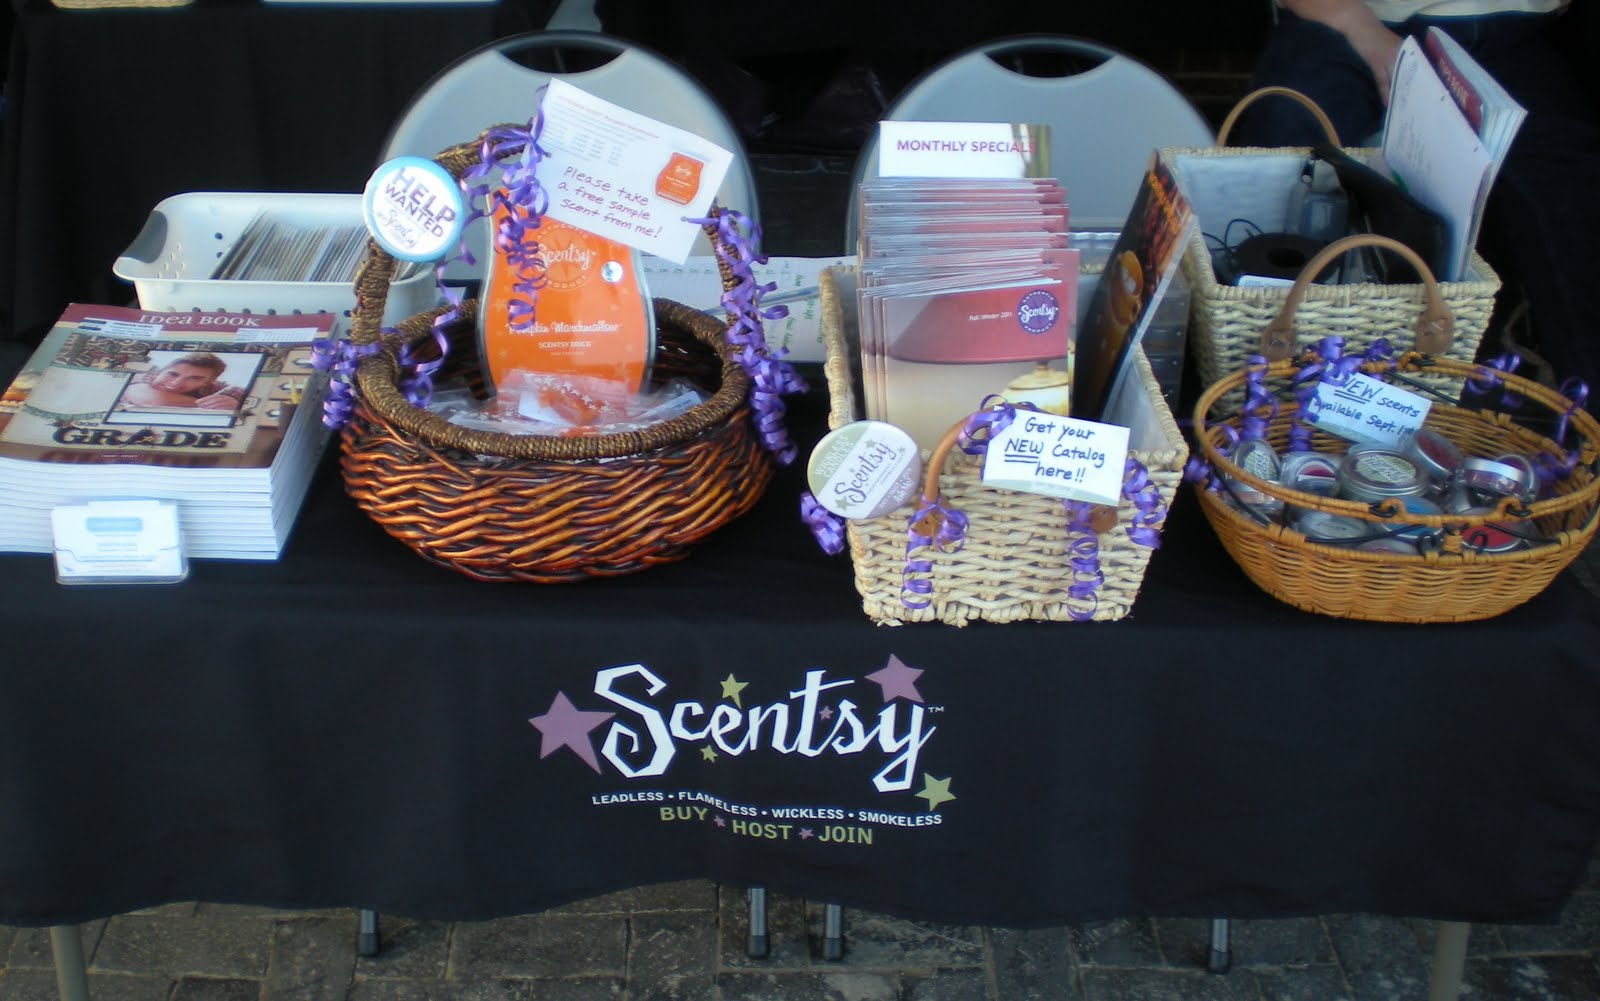 Scentsy Display Boards http://jenrubio.blogspot.com/2011/08/thanks-to-all-who-came-to-see-me-at.html